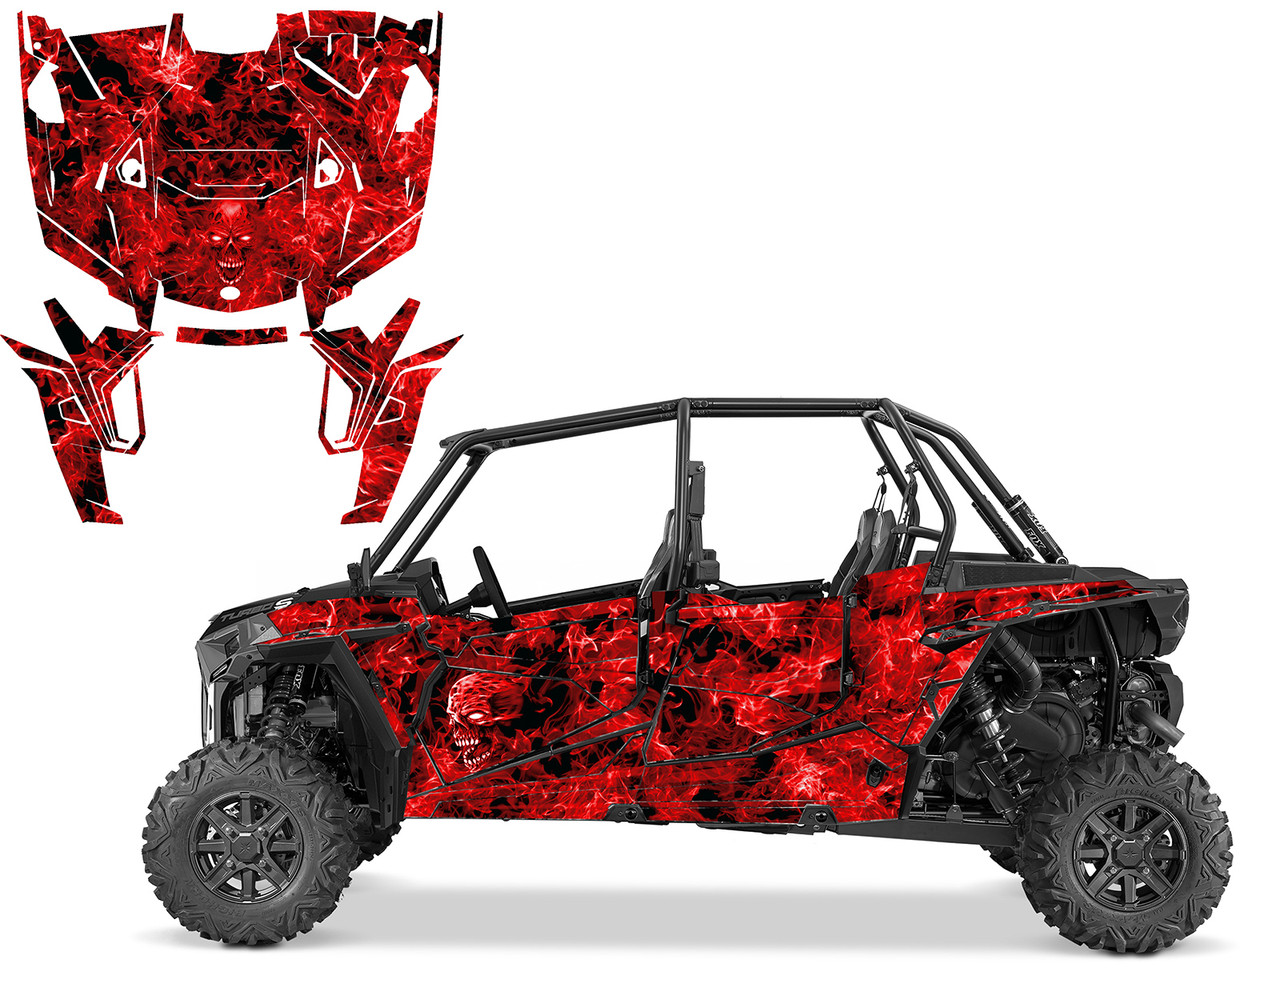 RZR 1000 XP4 TURBO-S 2019 Zombie